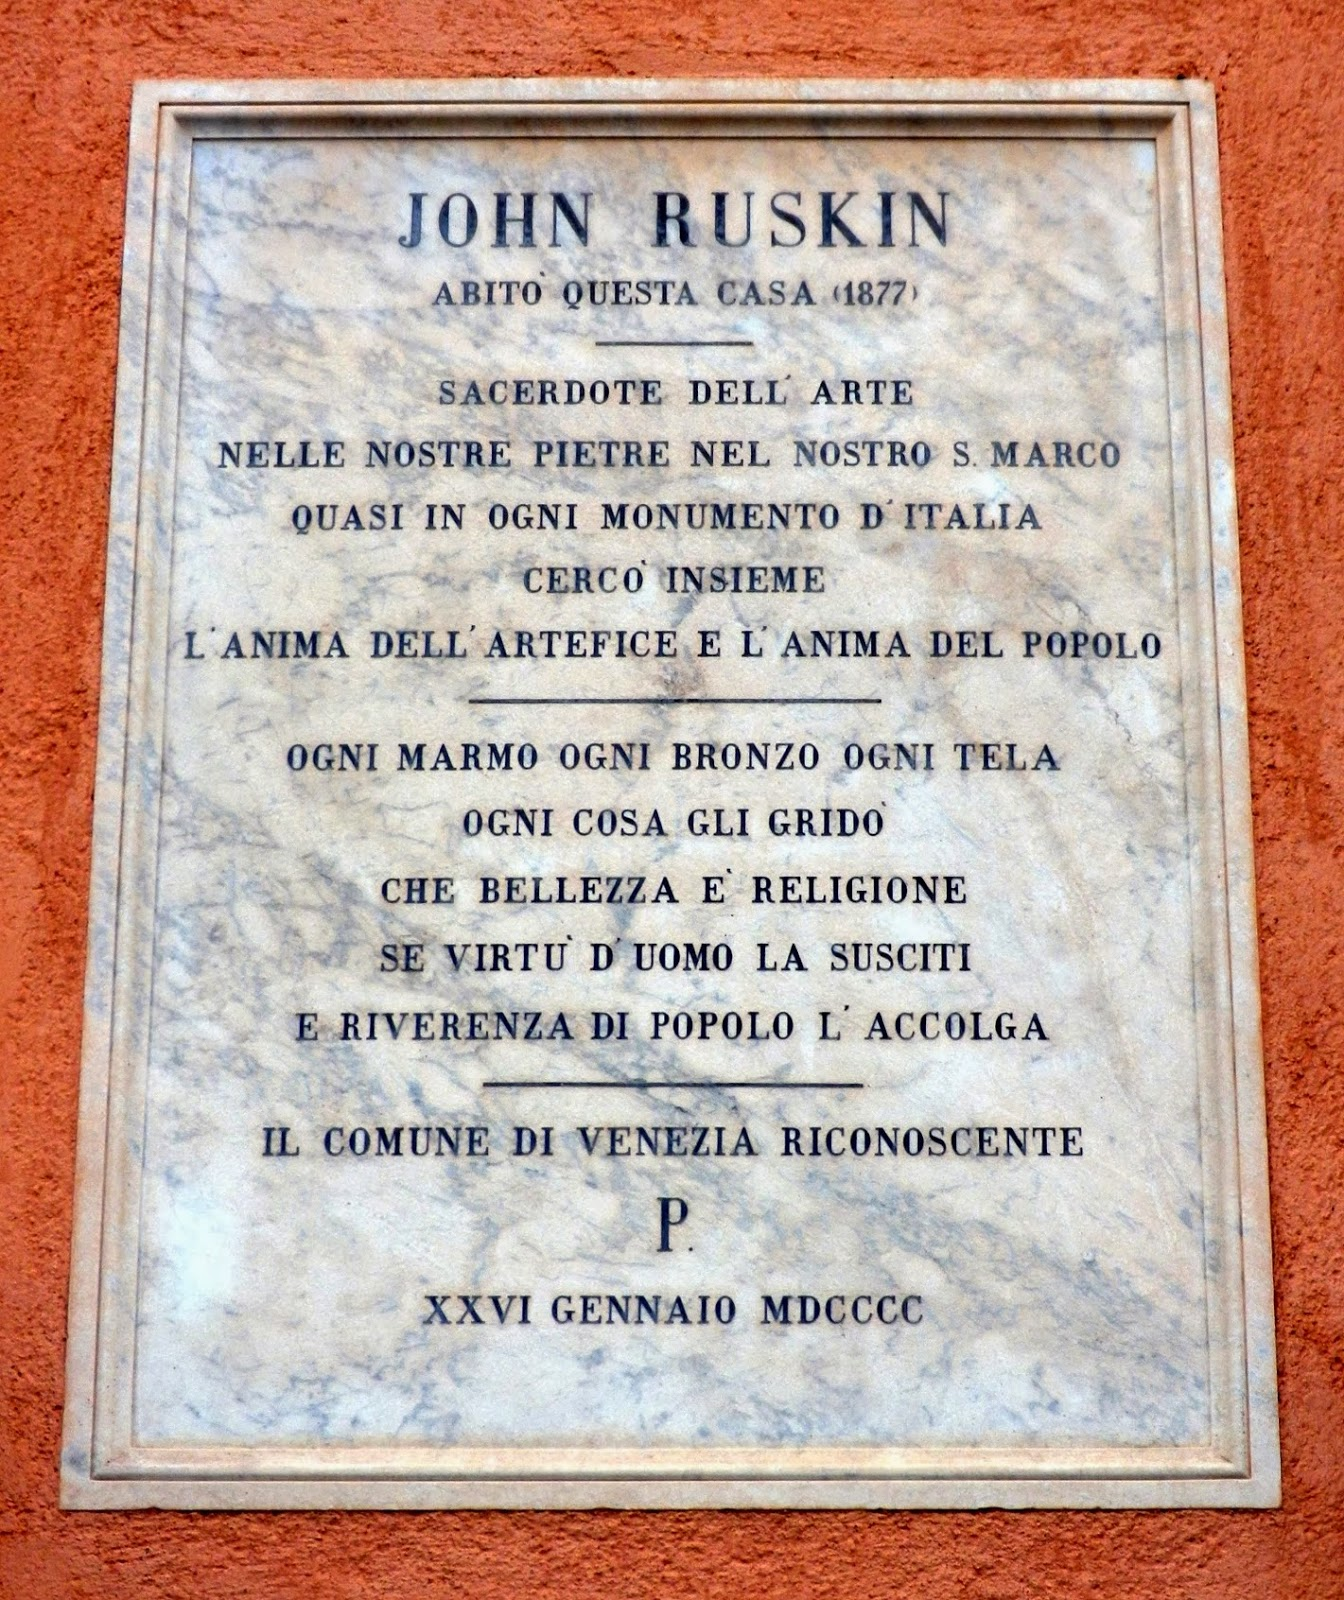 A plaque to John Ruskin on the Pensione Calcina, Zattere, Venice